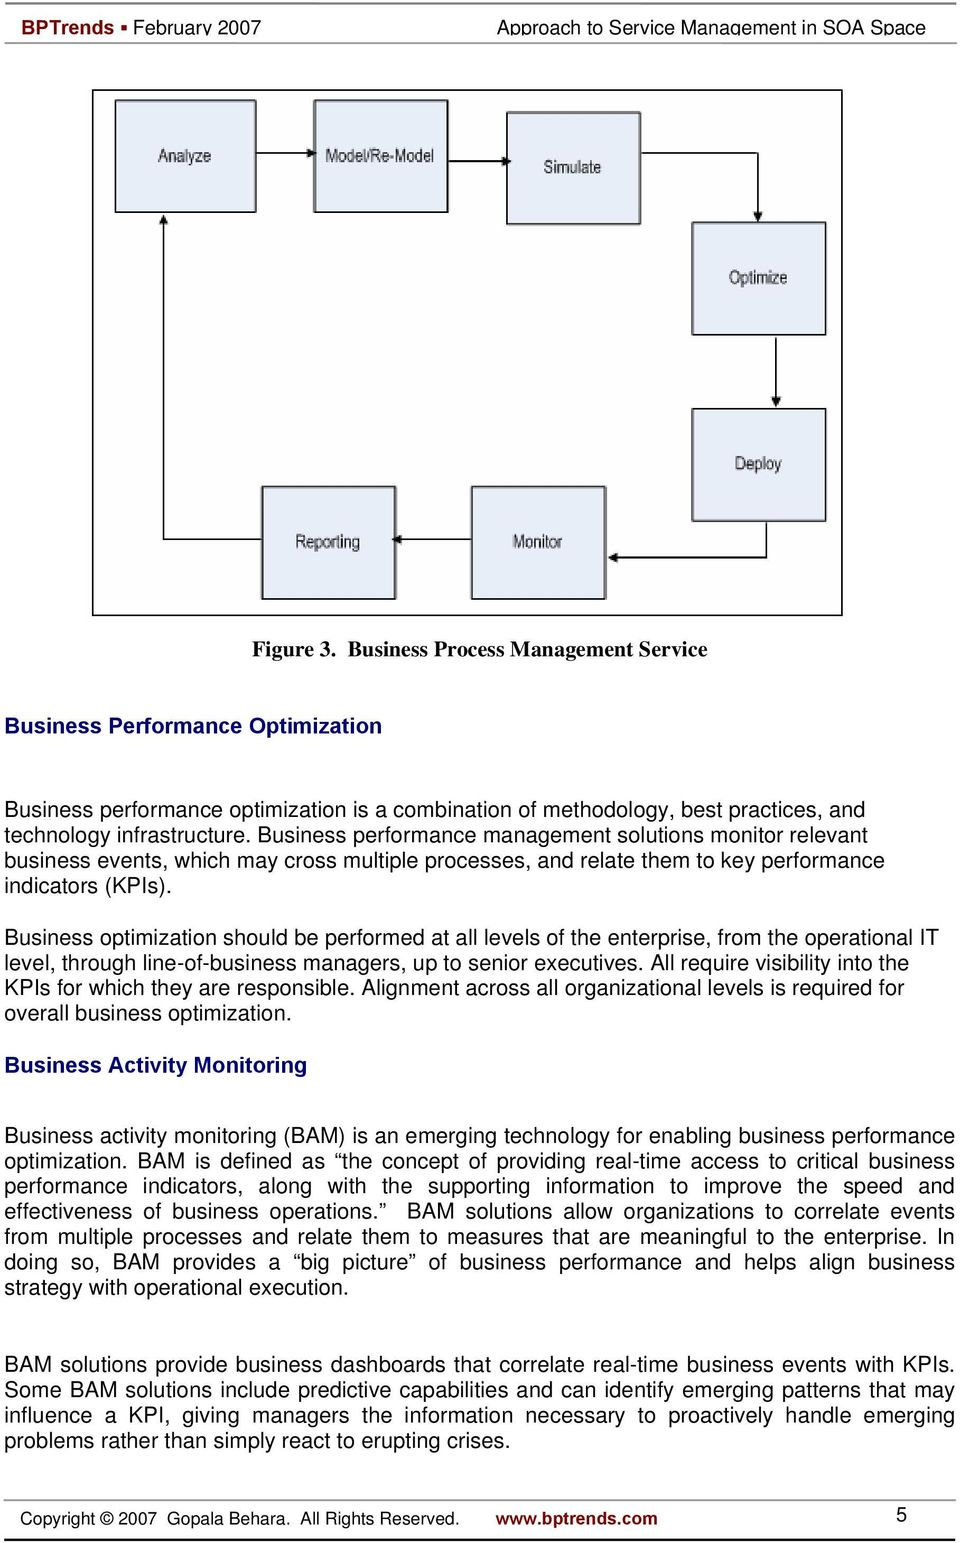 Business optimization should be performed at all levels of the enterprise, from the operational IT level, through line-of-business managers, up to senior executives.